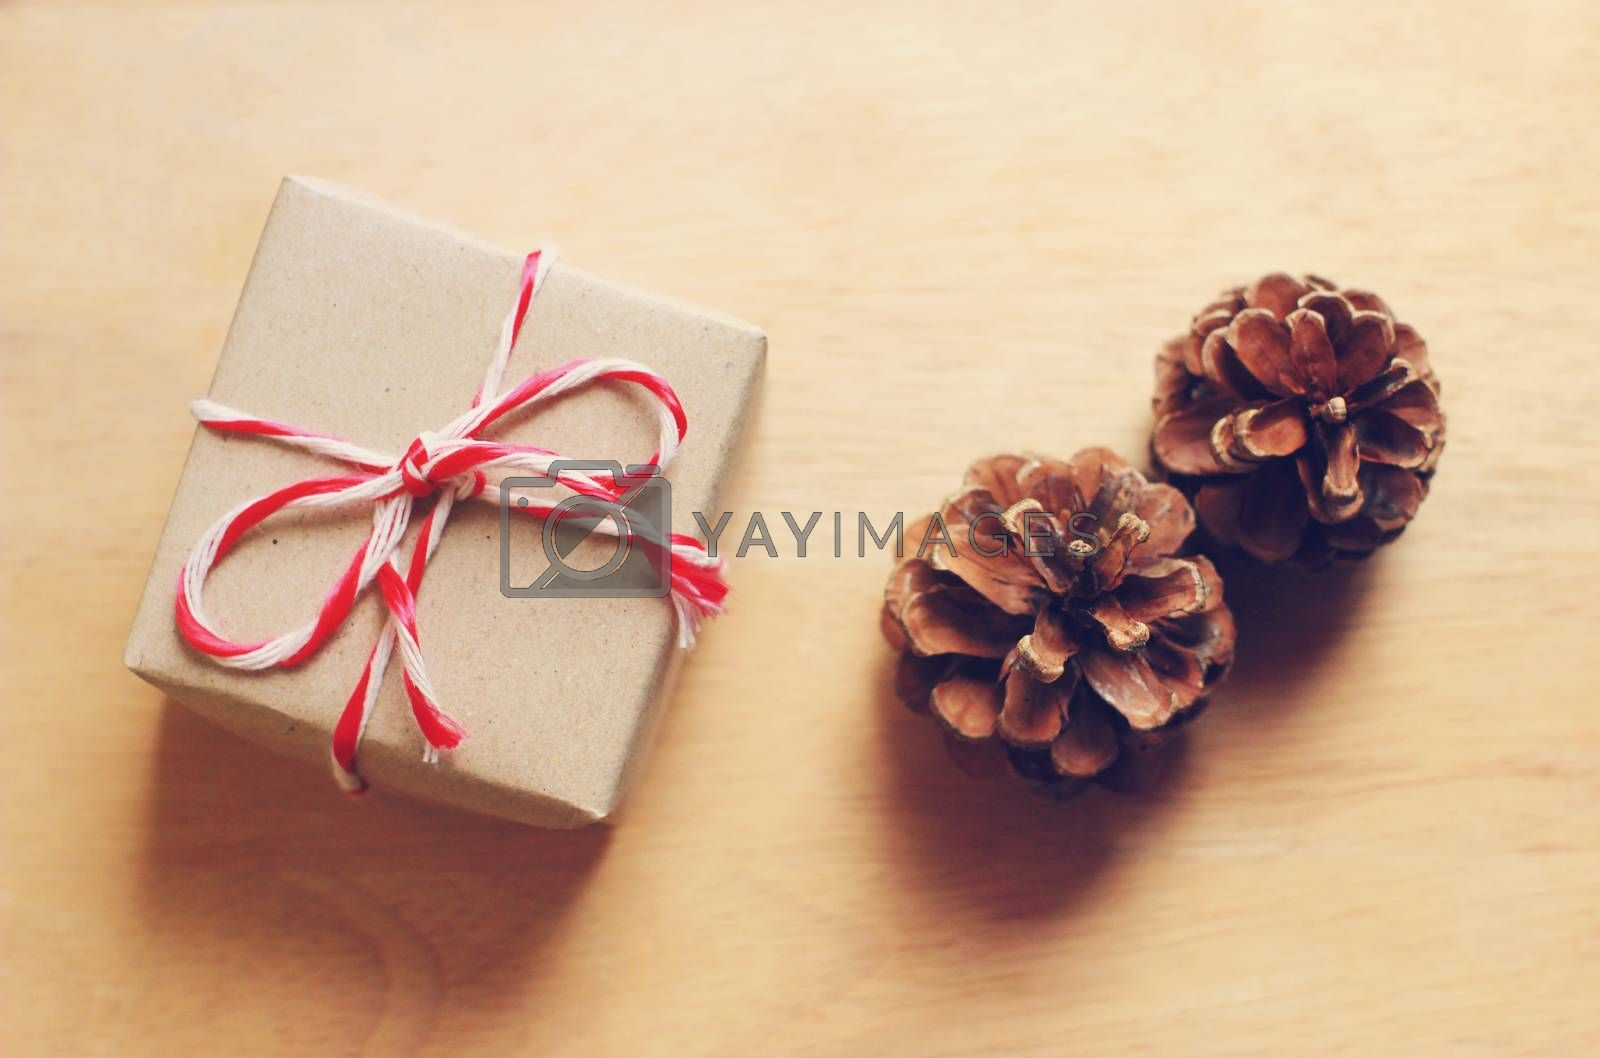 Handmade gift box and pine cone with retro filter effect